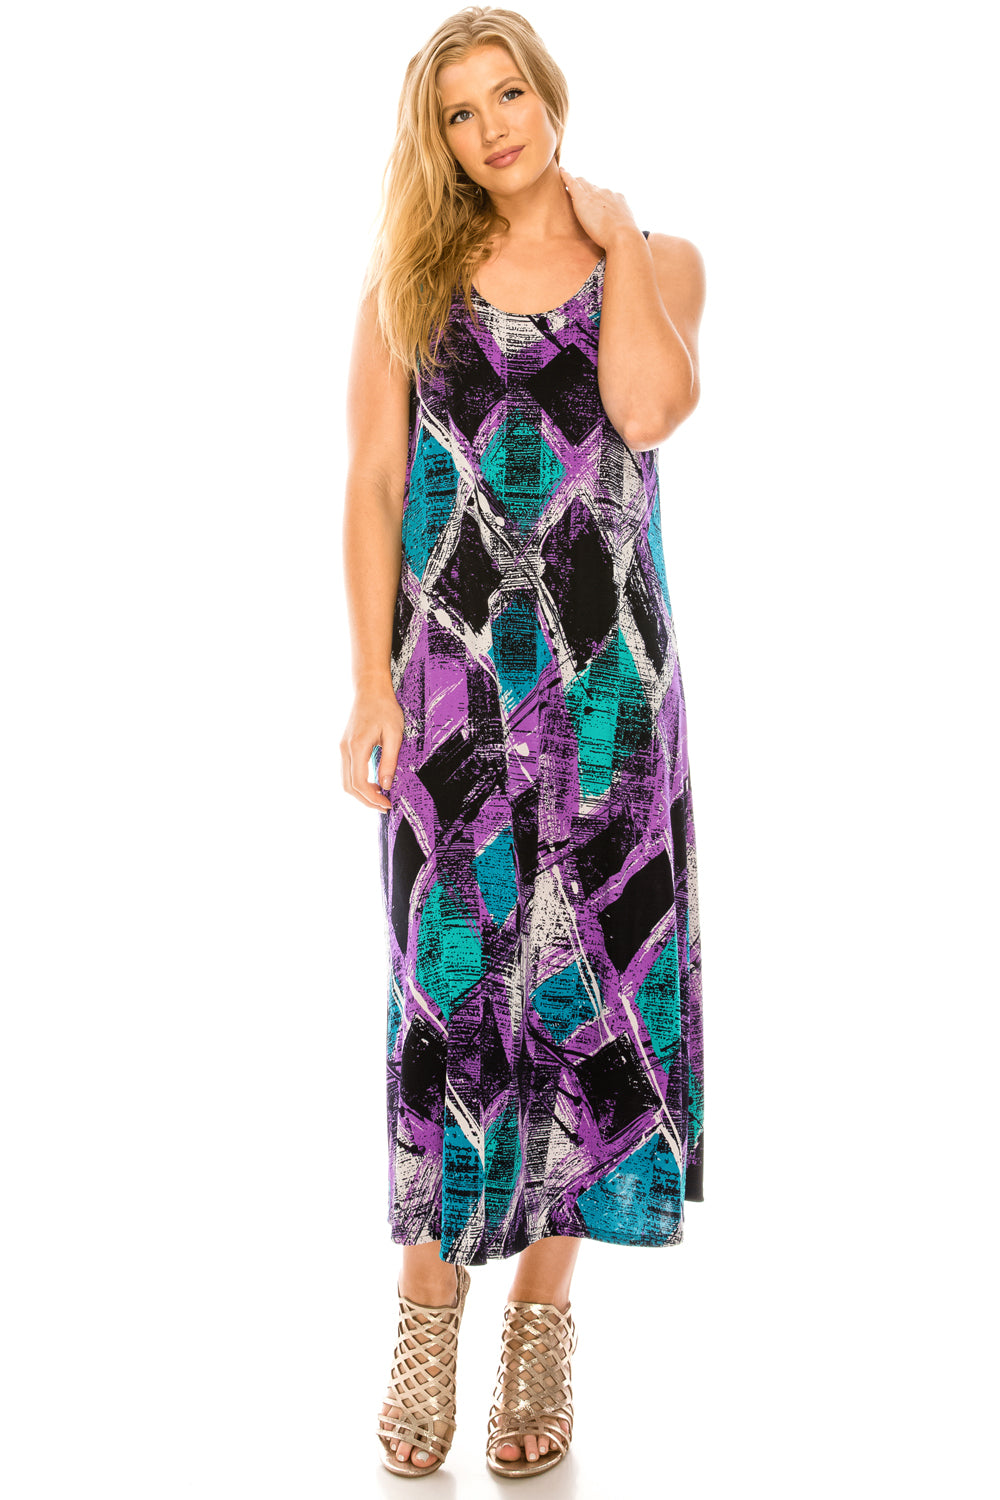 Jostar Women's Stretchy Tank Long Dress Sleeveless Plus Print, 700BN-TXP-W180 - Jostar Online